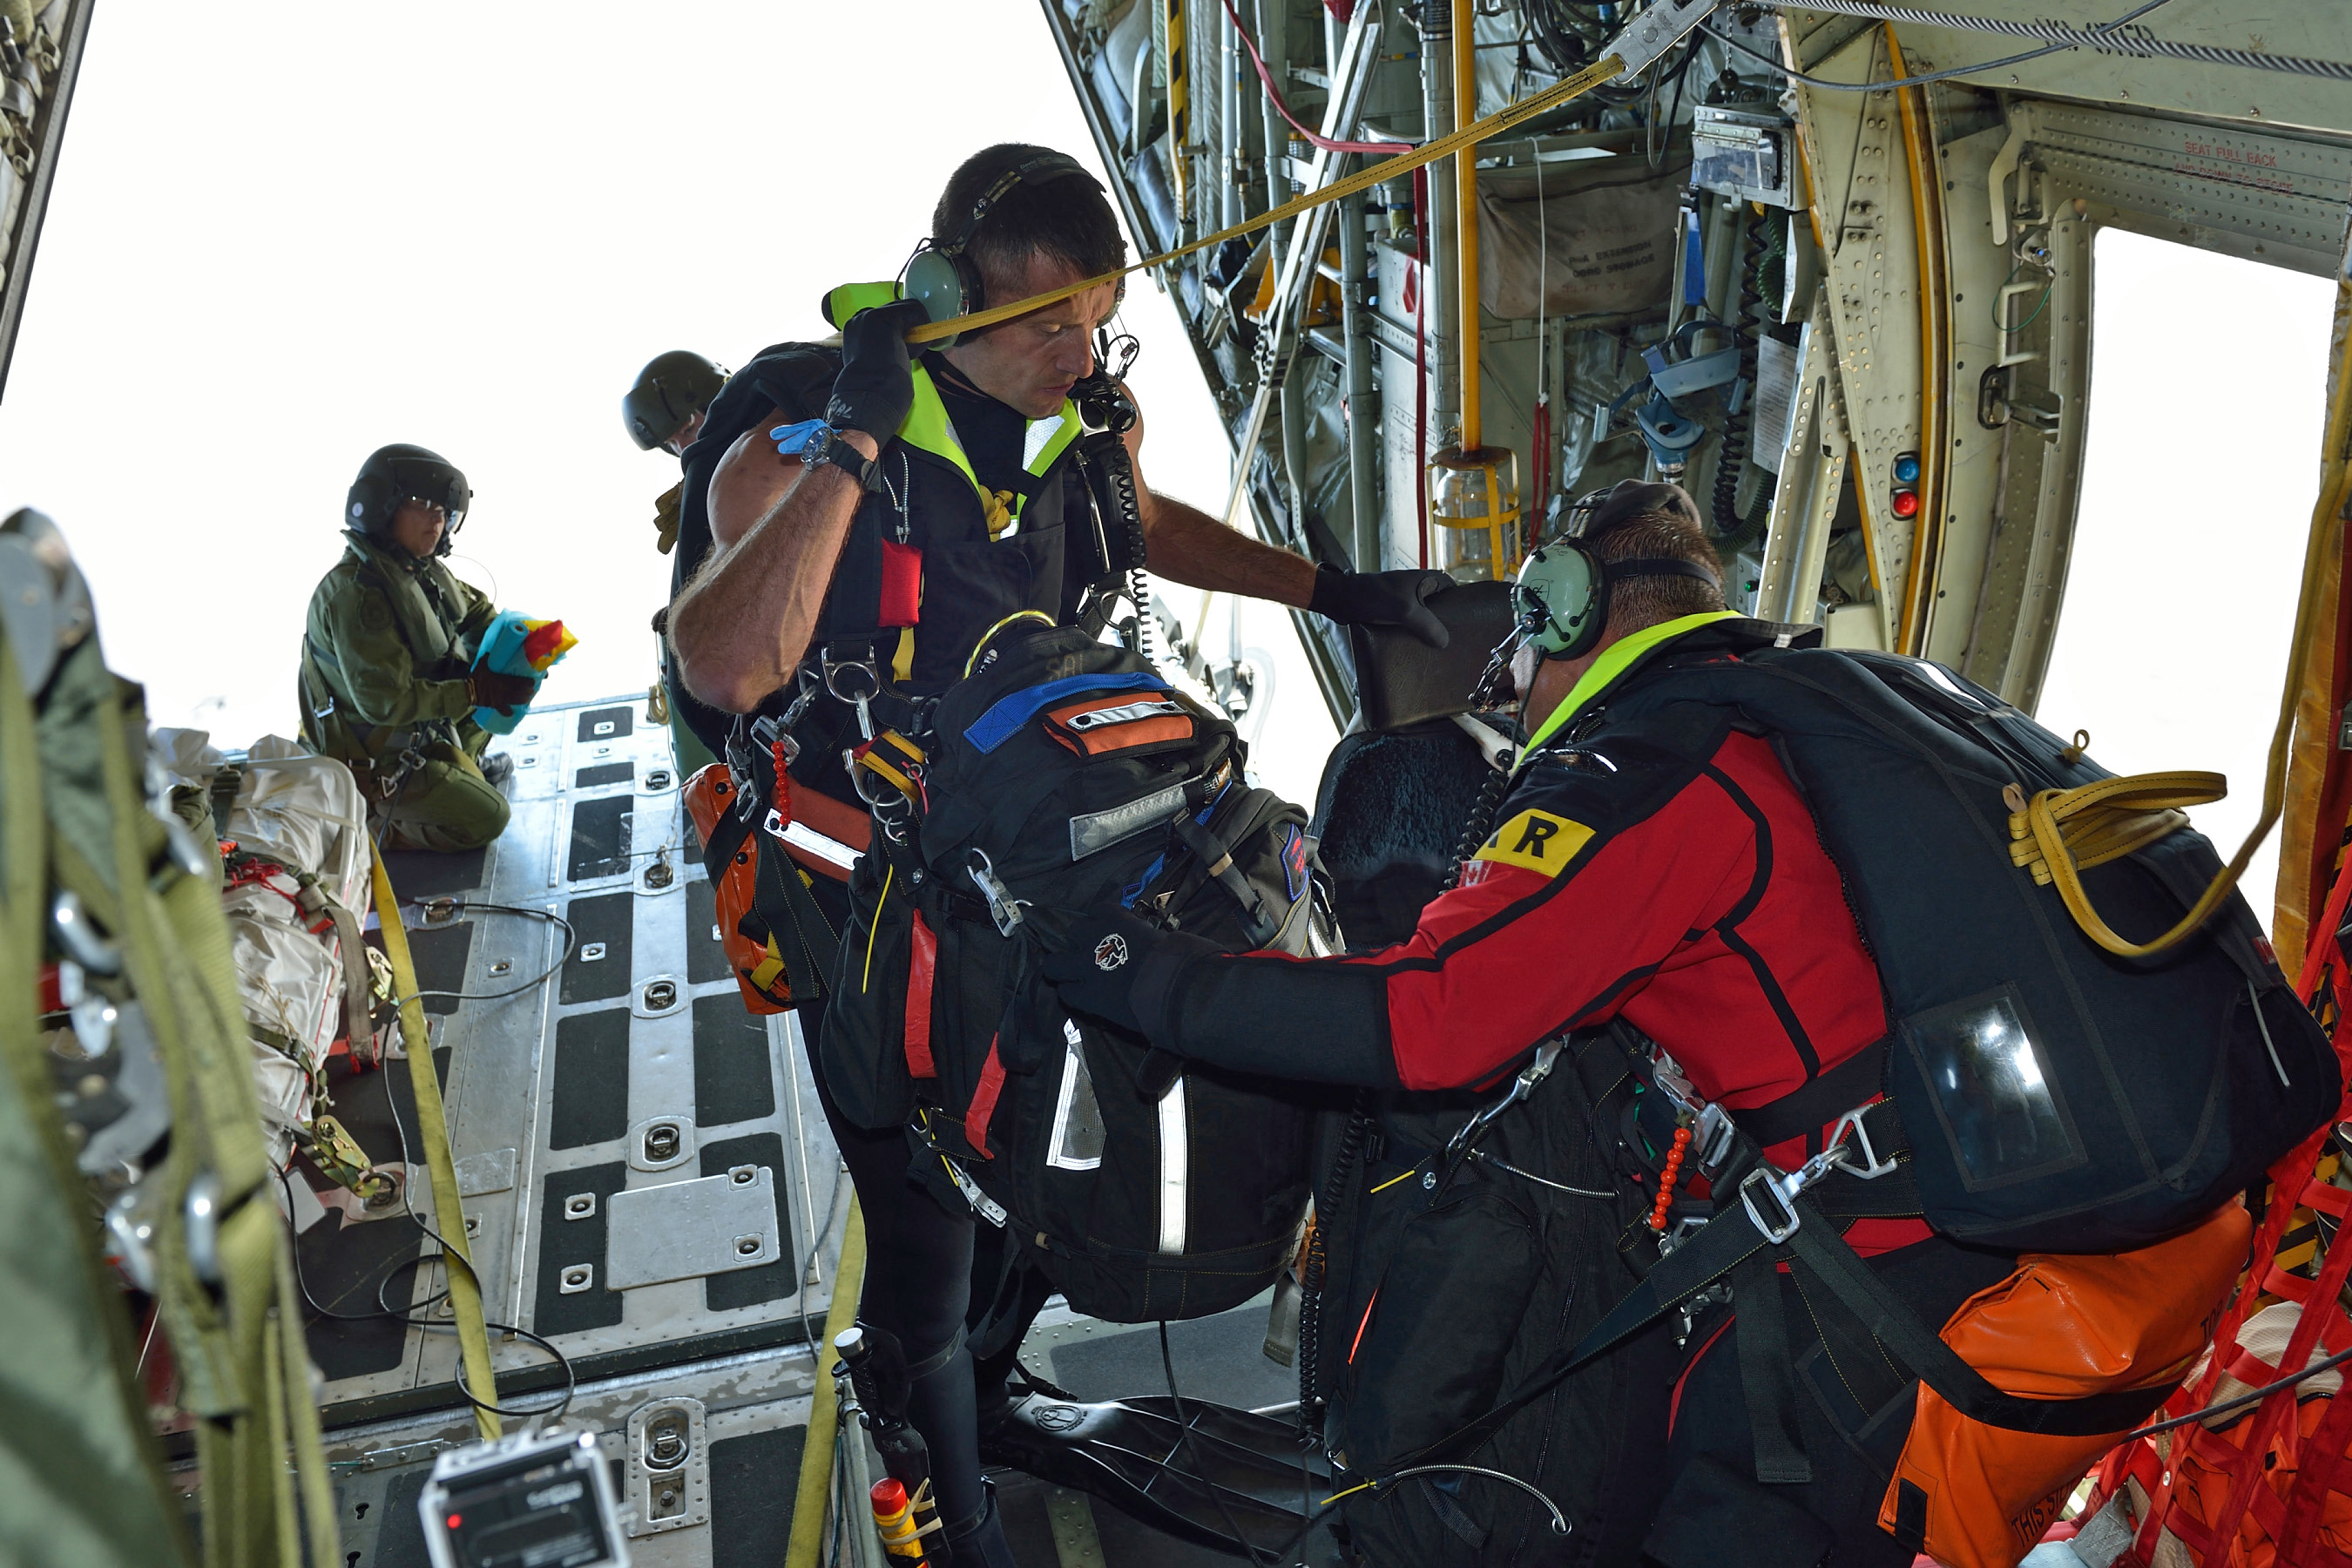 Sergeant Mark Salesse (centre) and Master Corporal Danny Dicerni (right), search and rescue technicians with 435 Transport and Rescue Squadron in Winnipeg, Manitoba, prepare their equipment to jump from a CC-130 Hercules aircraft to a simulated vessel in distress, while Sergeant Nathalie Verret readies streamers during the National Search and Rescue Exercise held in Gimli, Manitoba, on September 17, 2013. PHOTO: Sergeant Bill McLeod